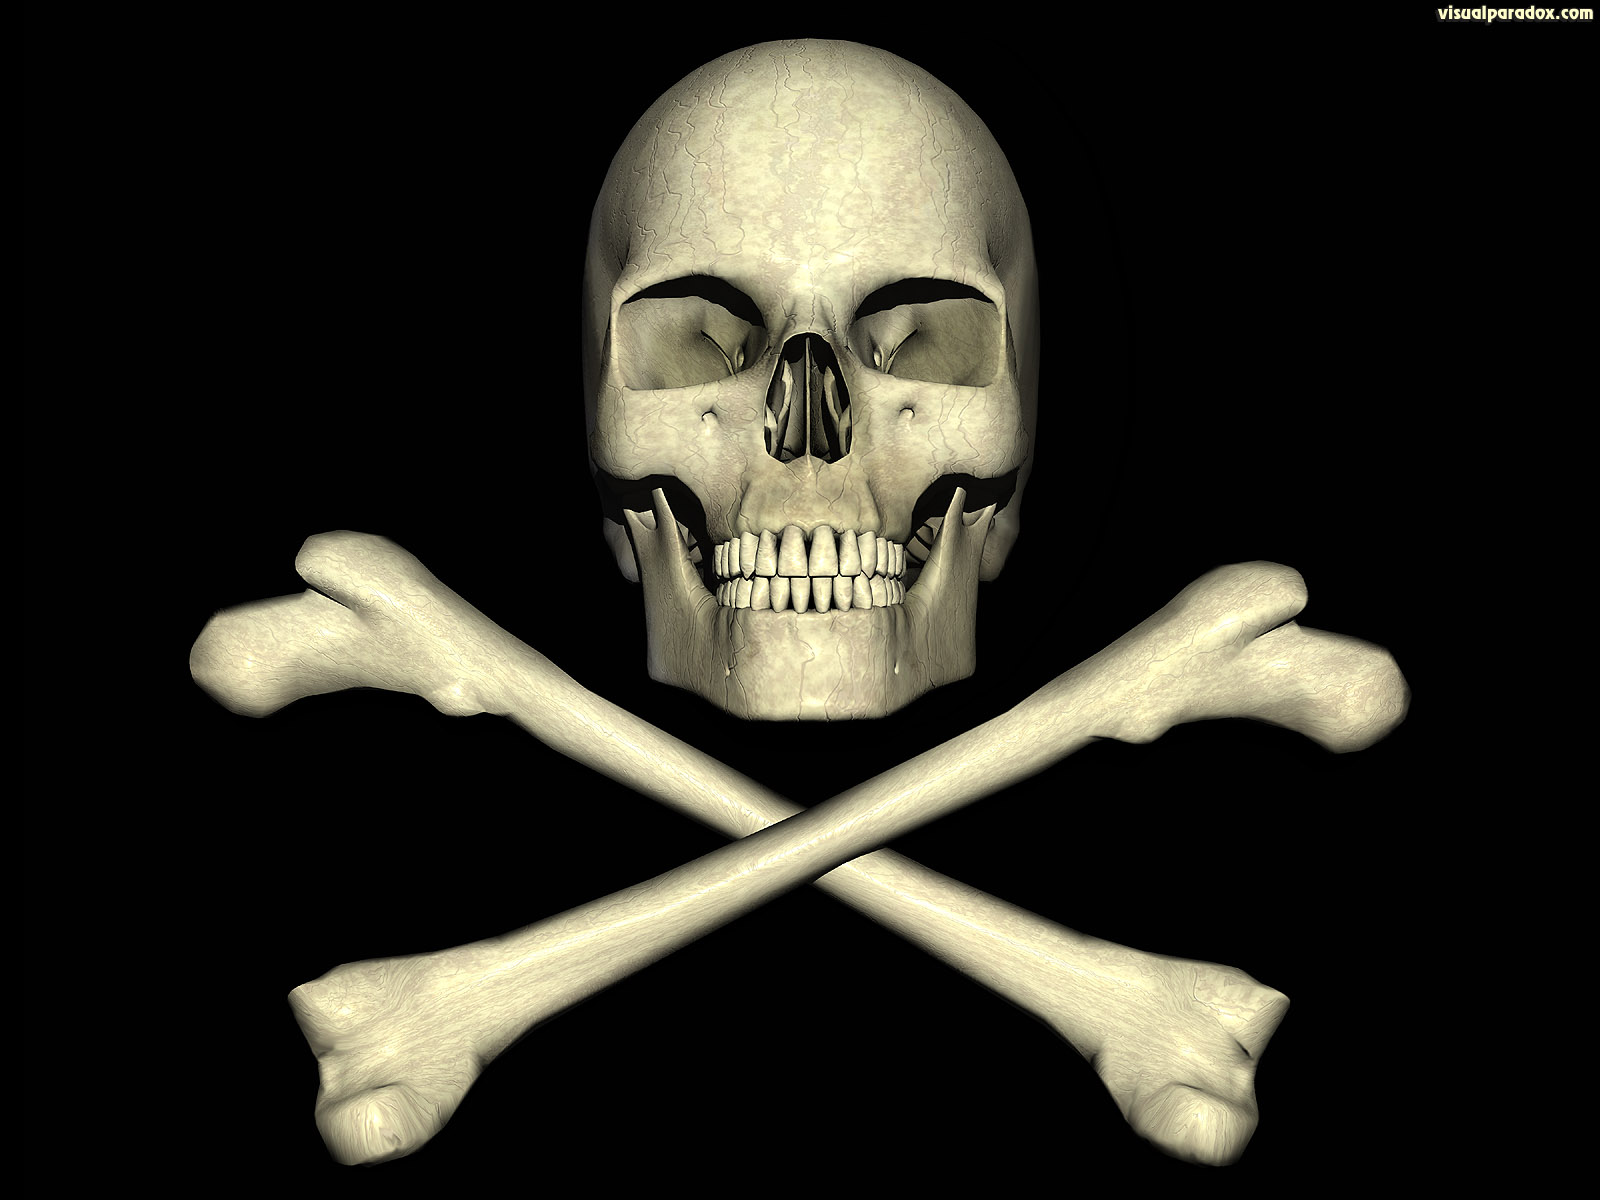 jolly, roger, skull, pirate, bones, poison, deadly, danger, pirates, dangerous, 3d, wallpaper